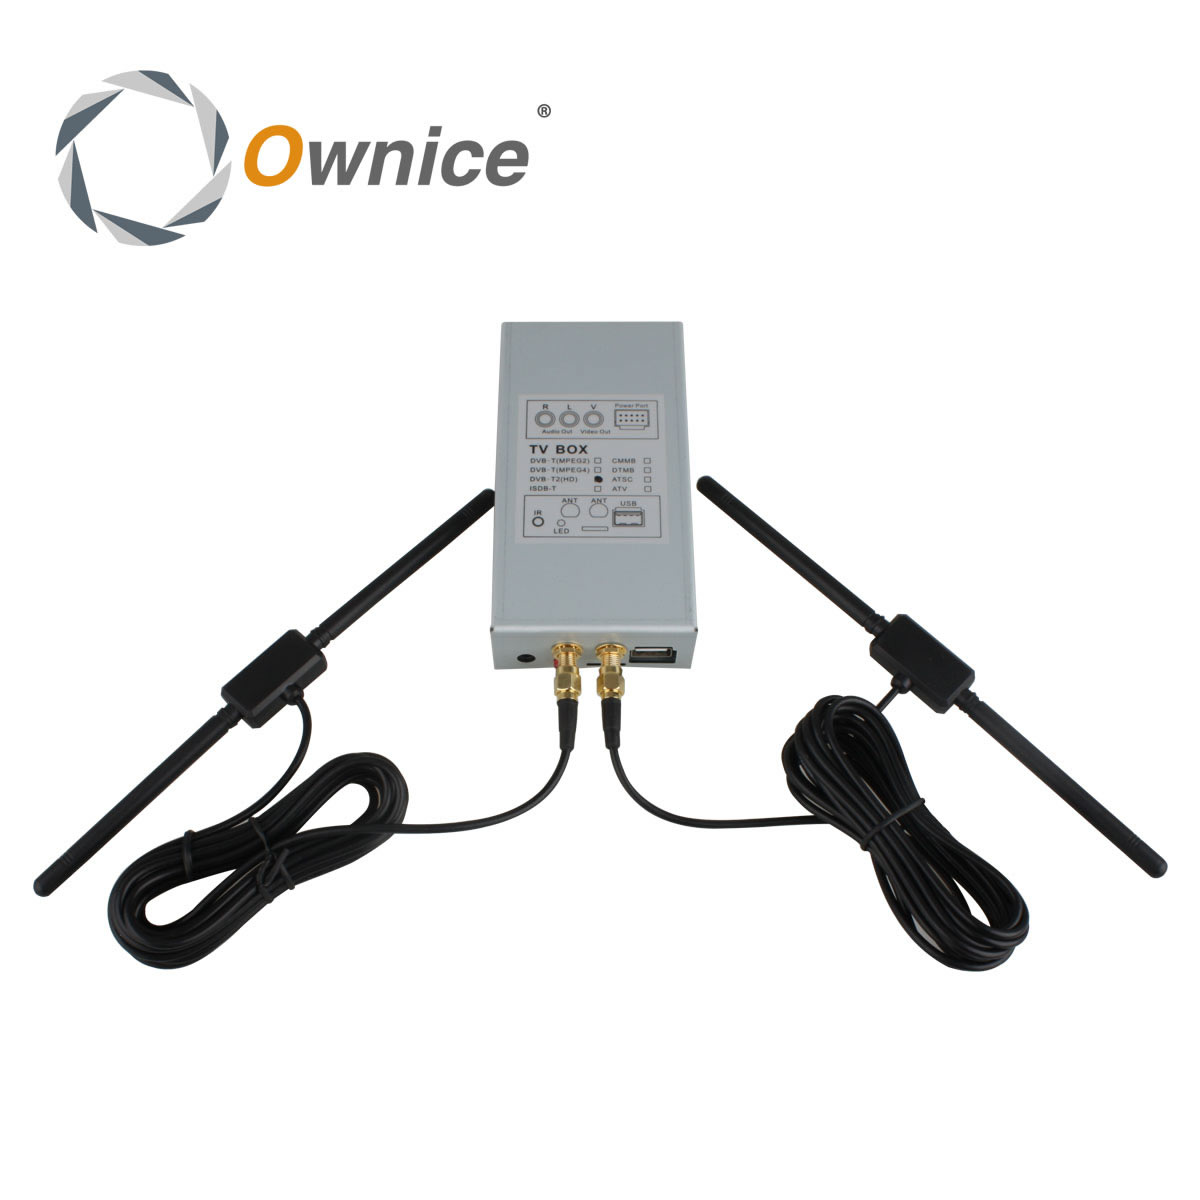 Special DVB-T MPEG4  TV Box Tuners For Ownice Car DVD Player. The item just for our DVD special dvb t mpeg4 tv box tuners for ownice car dvd player the item just for our dvd